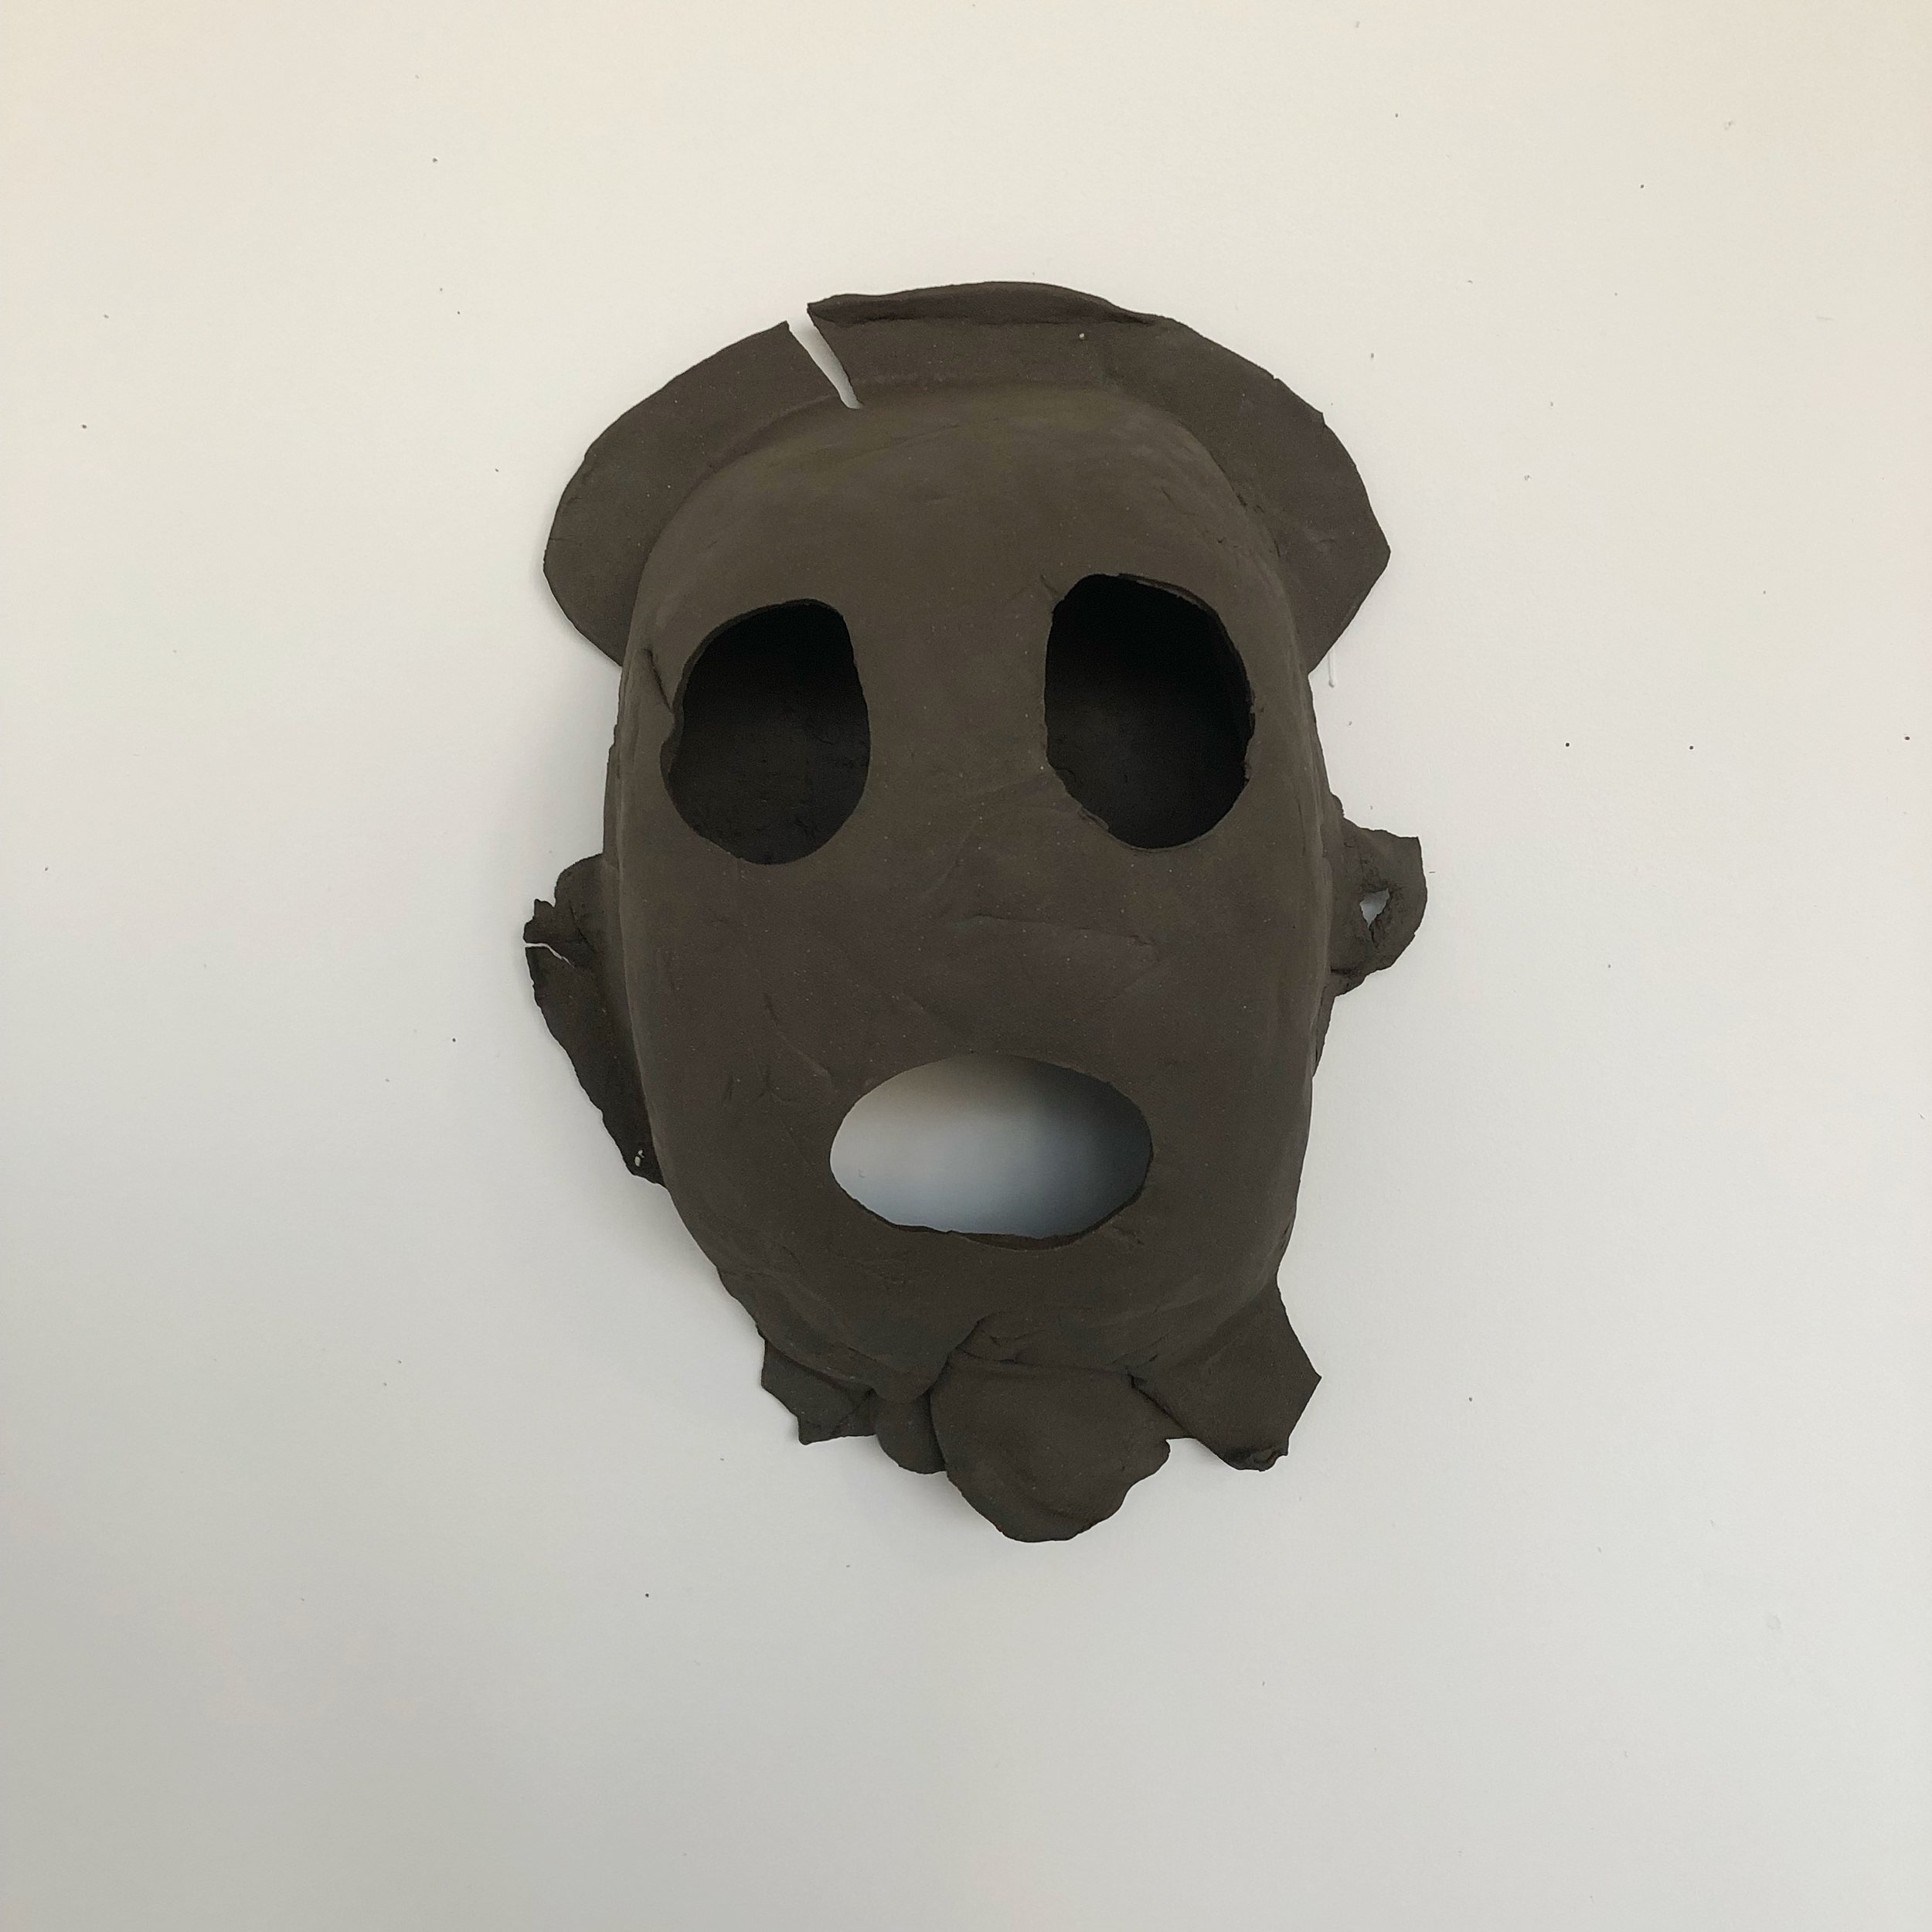 What Hole?, 2019, ceramic, 17 x 11 x 6 inches